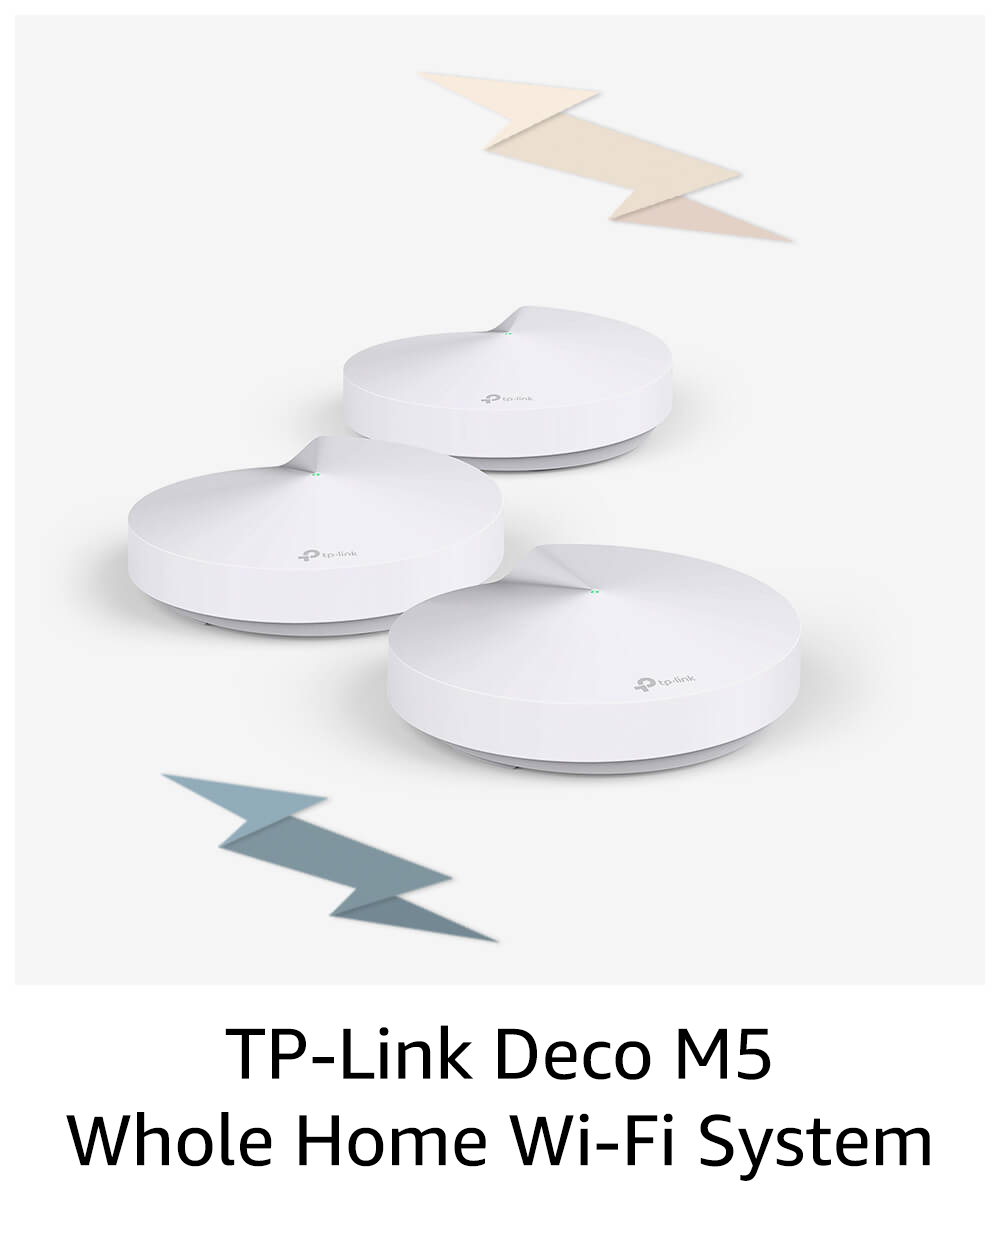 TP-Link Deco M5 Whole Home Wi-Fi System